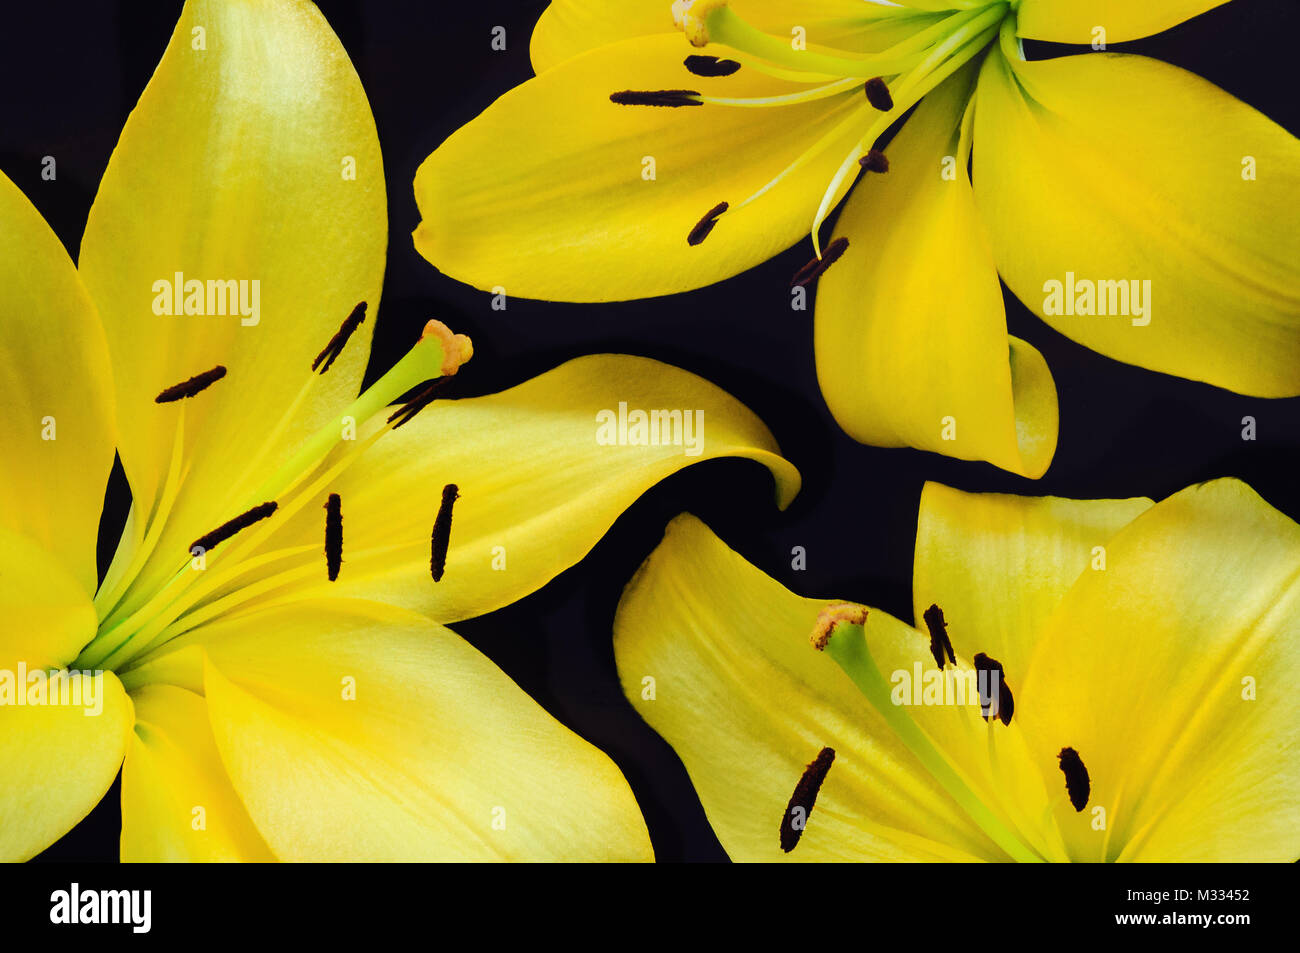 Yellow Lillies Arranged on Dark Background - Stock Image